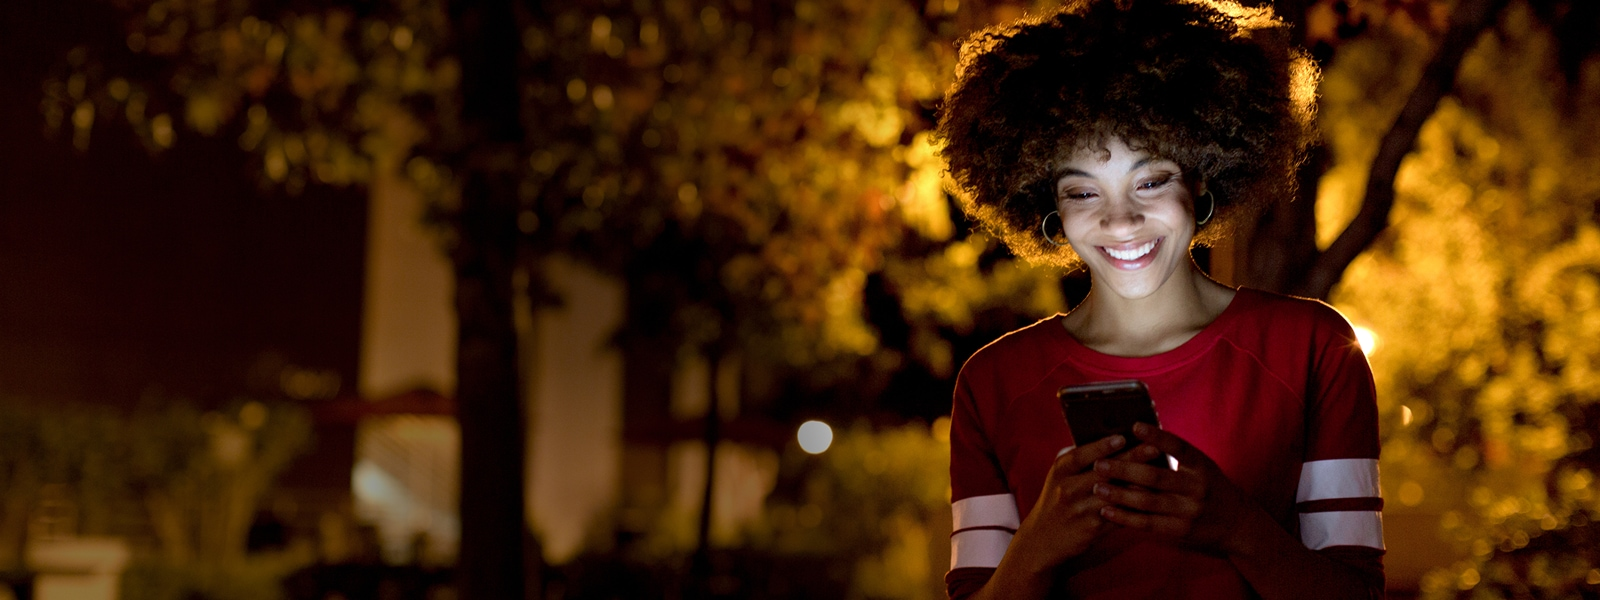 A smiling woman looks at her phone